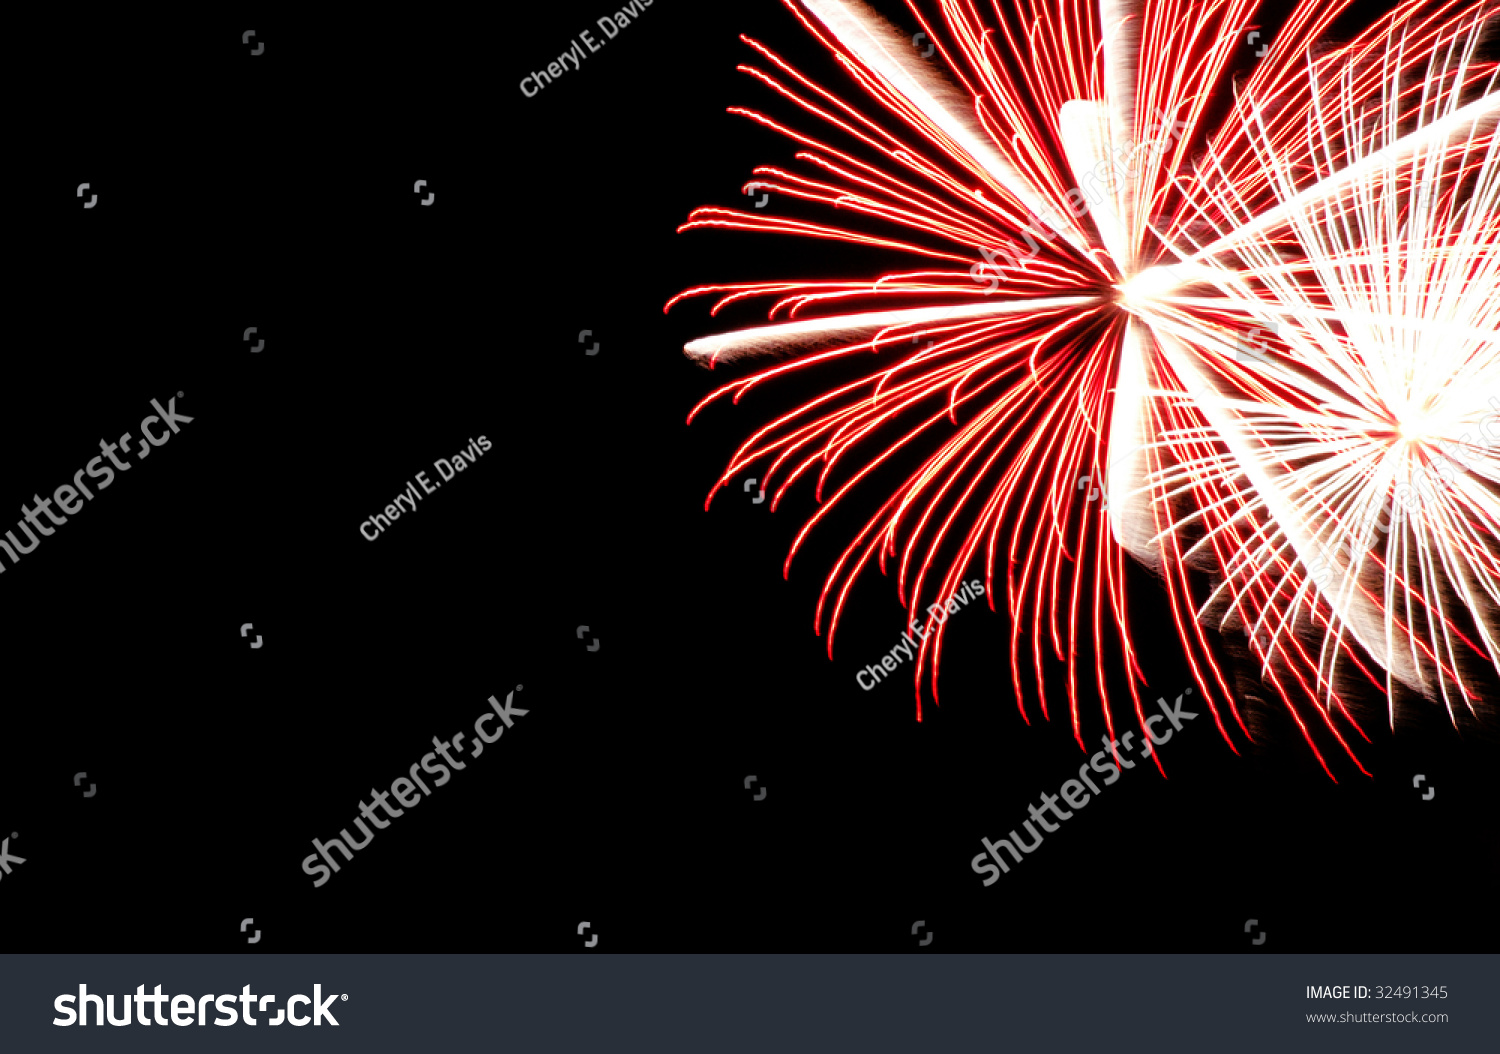 Red Fireworks Free Stock Photo: Red And White Fireworks Burst In Upper Right Corner